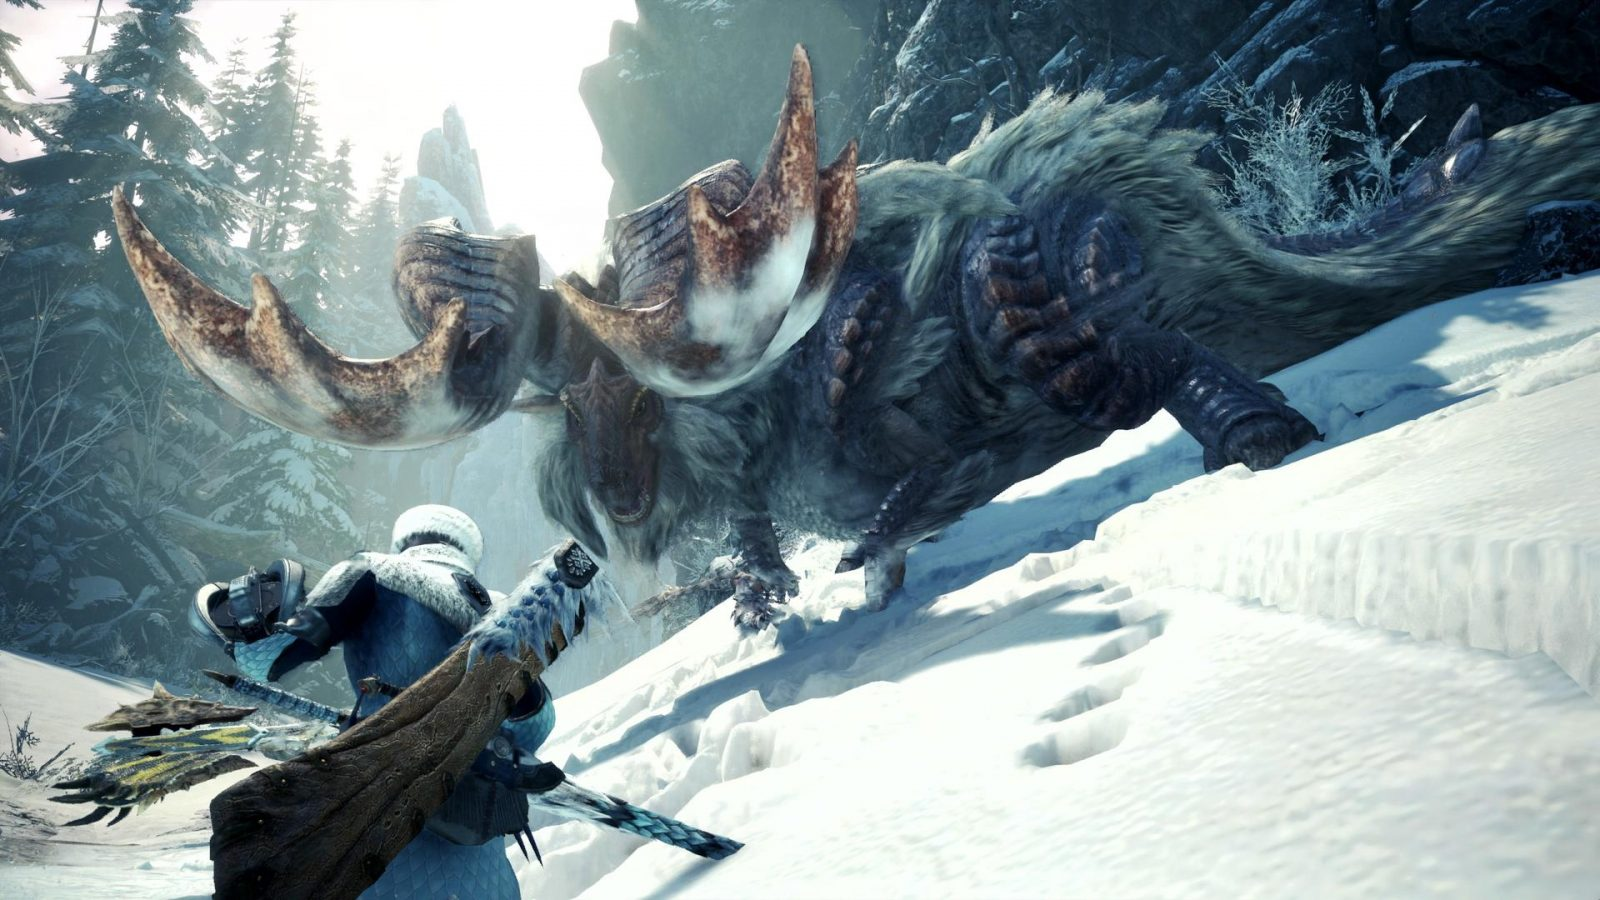 Monster Hunter World: Iceborne Postmortem: The Making of the Expansion and the Future of the Series